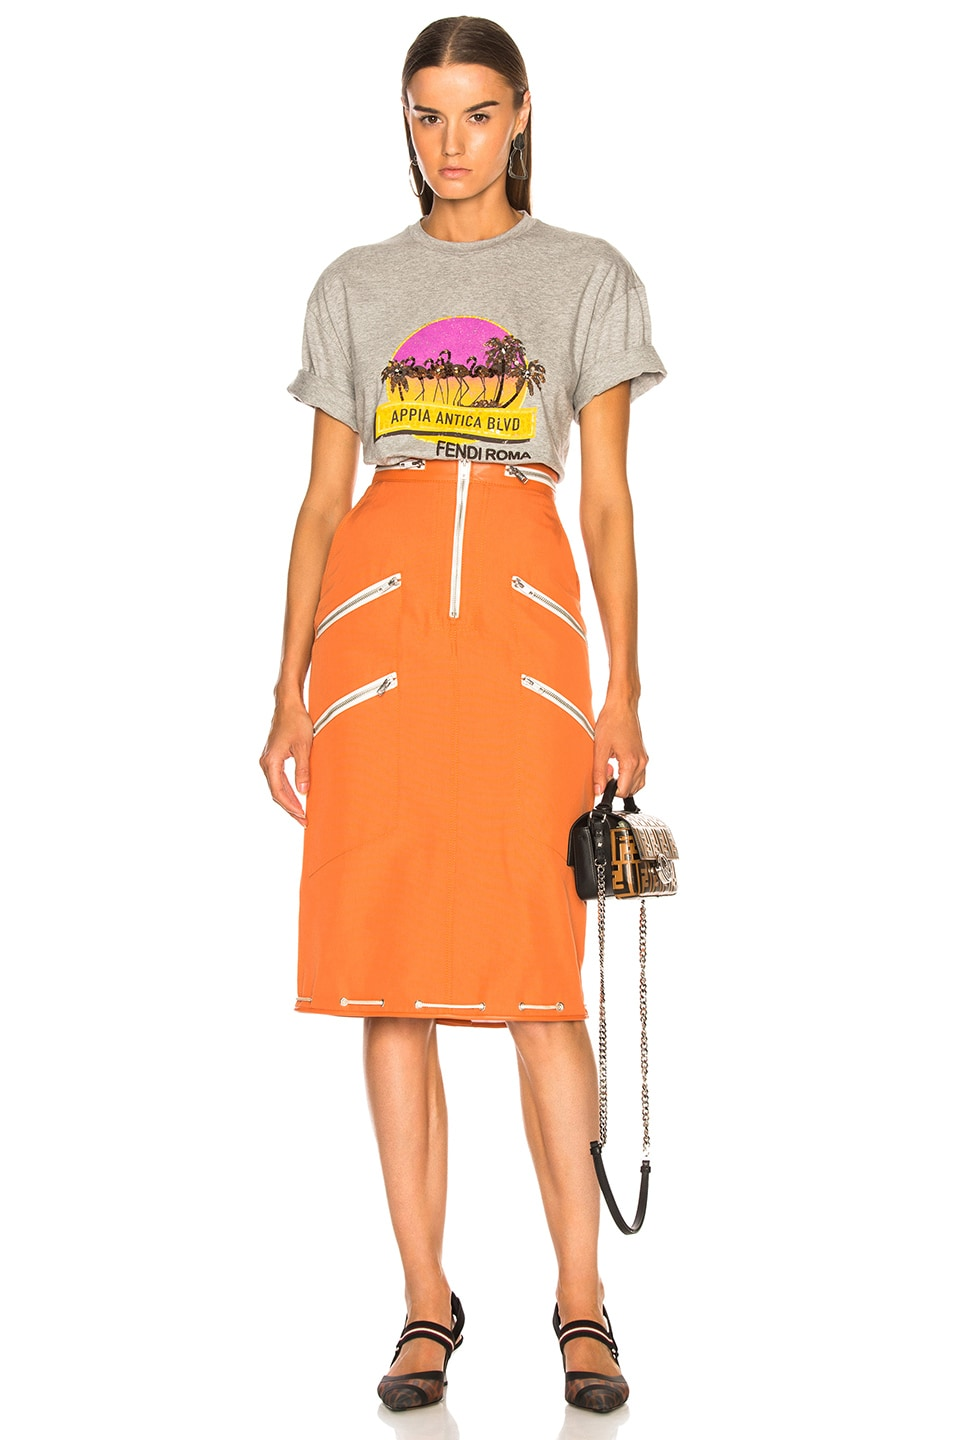 Image 5 of Fendi Applia Antica Boulevard Embellished Graphic Tee in Grey